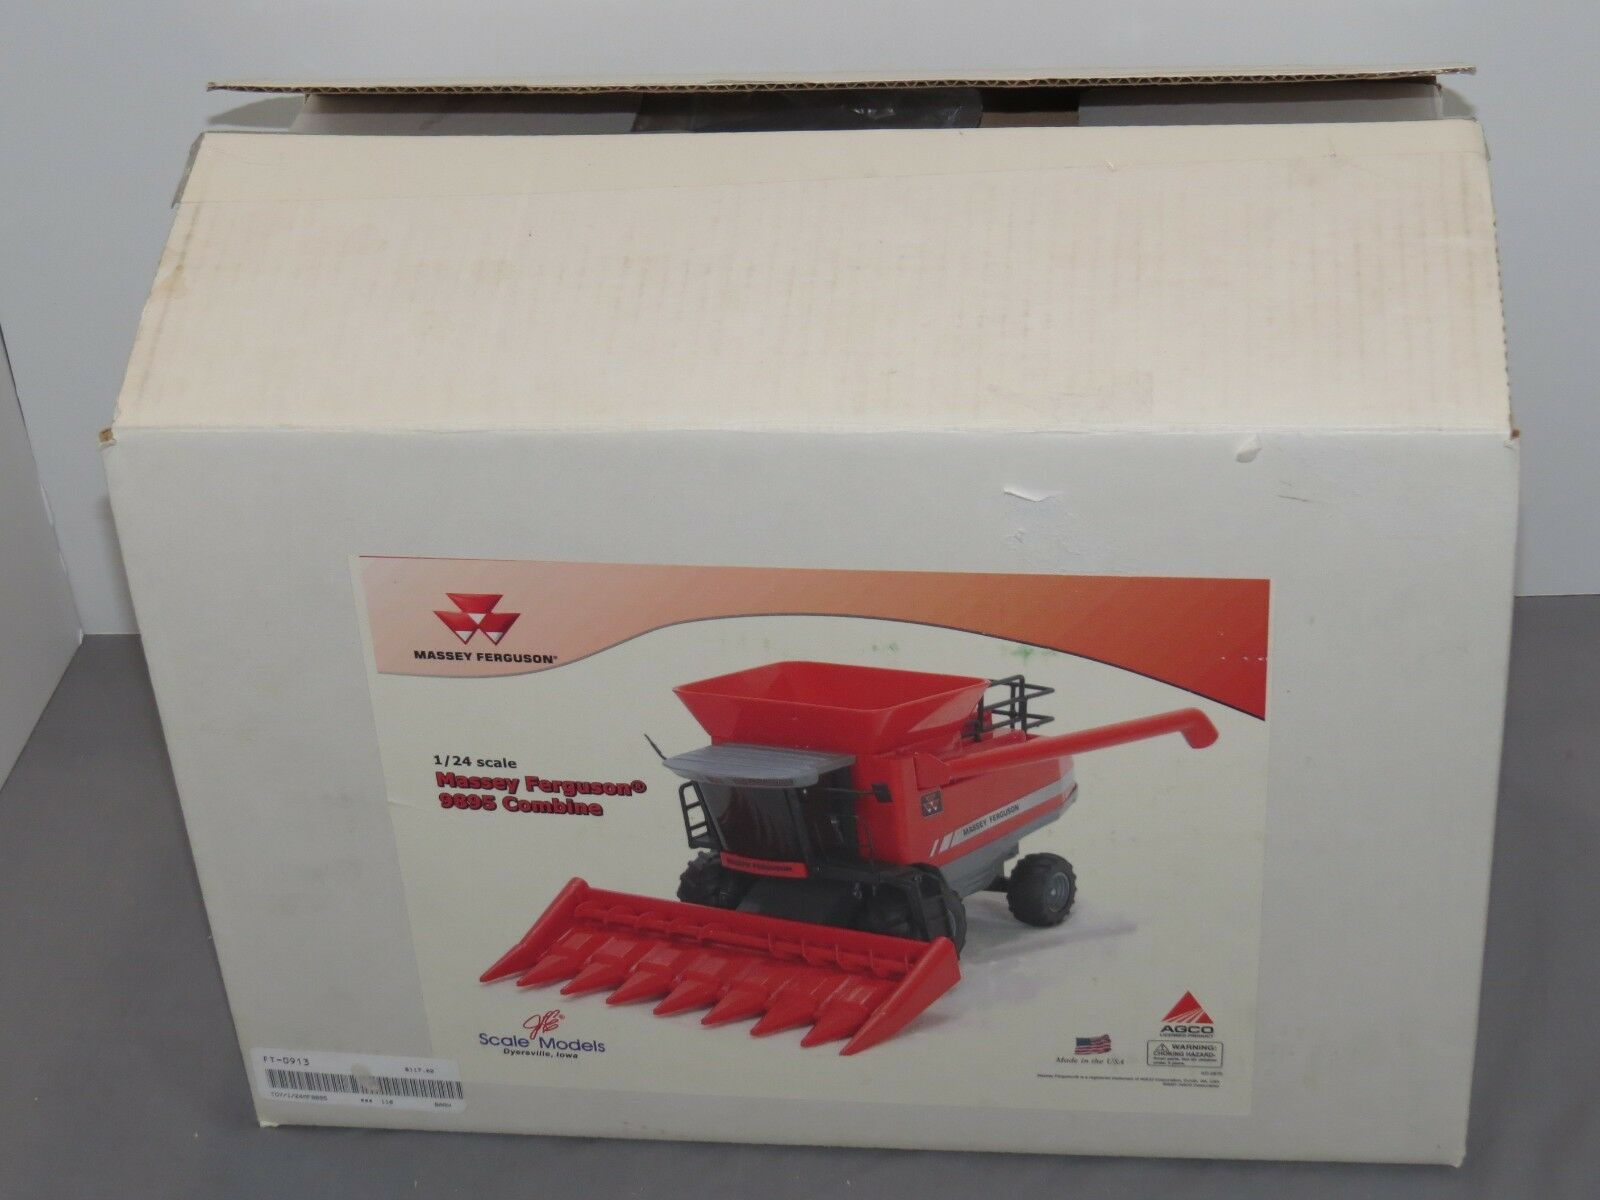 Massey Ferguson MF 9895 Toy Combine with Corn Head 1 24 scale Scale Models NIB